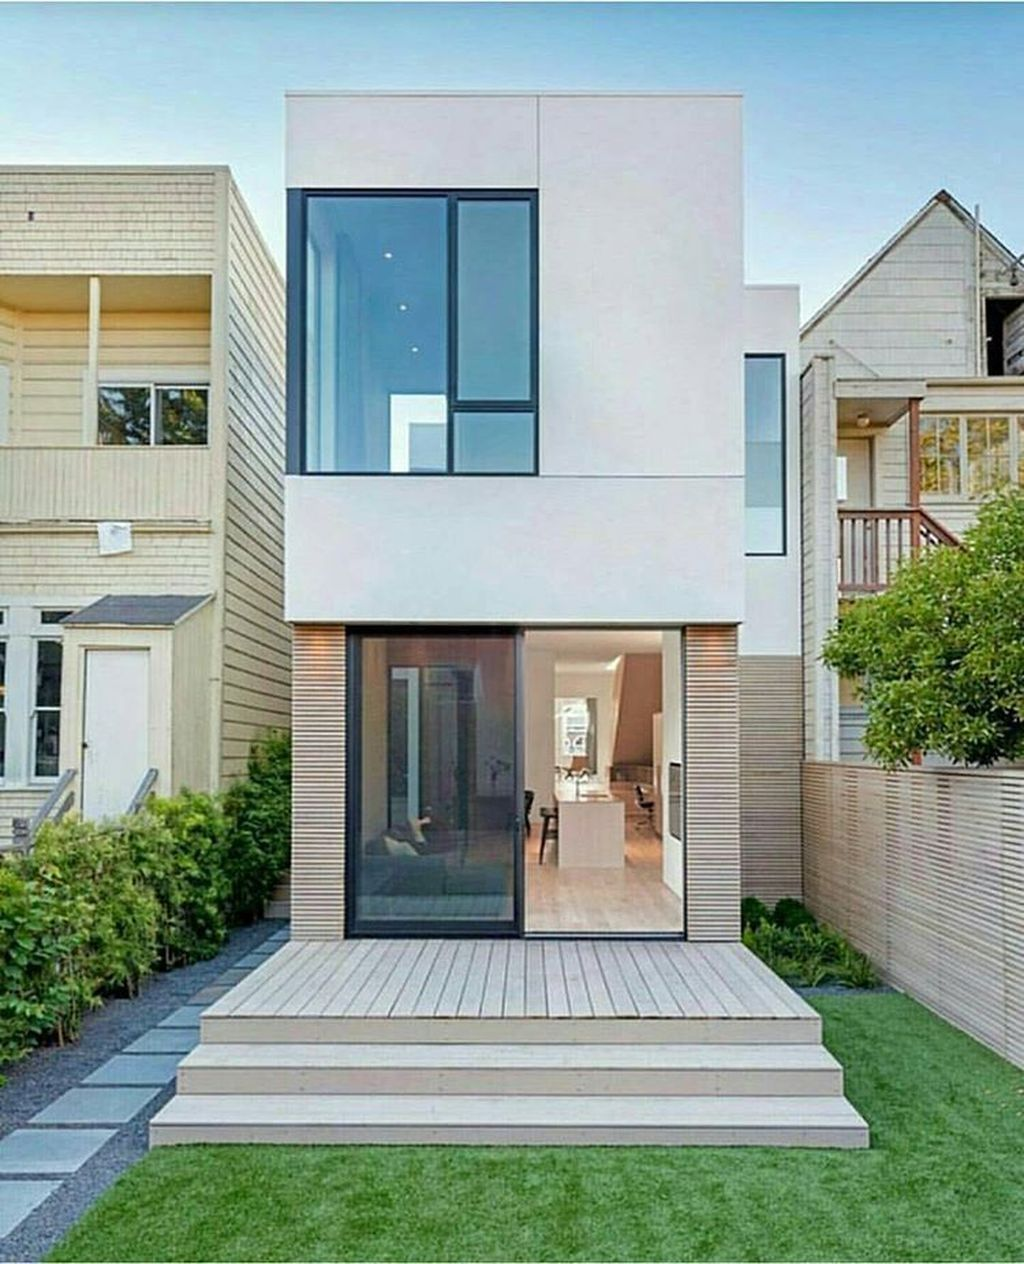 38 Awesome Small Contemporary House Designs Ideas To Try Narrow House Designs Modern Minimalist House Modern Small House Design